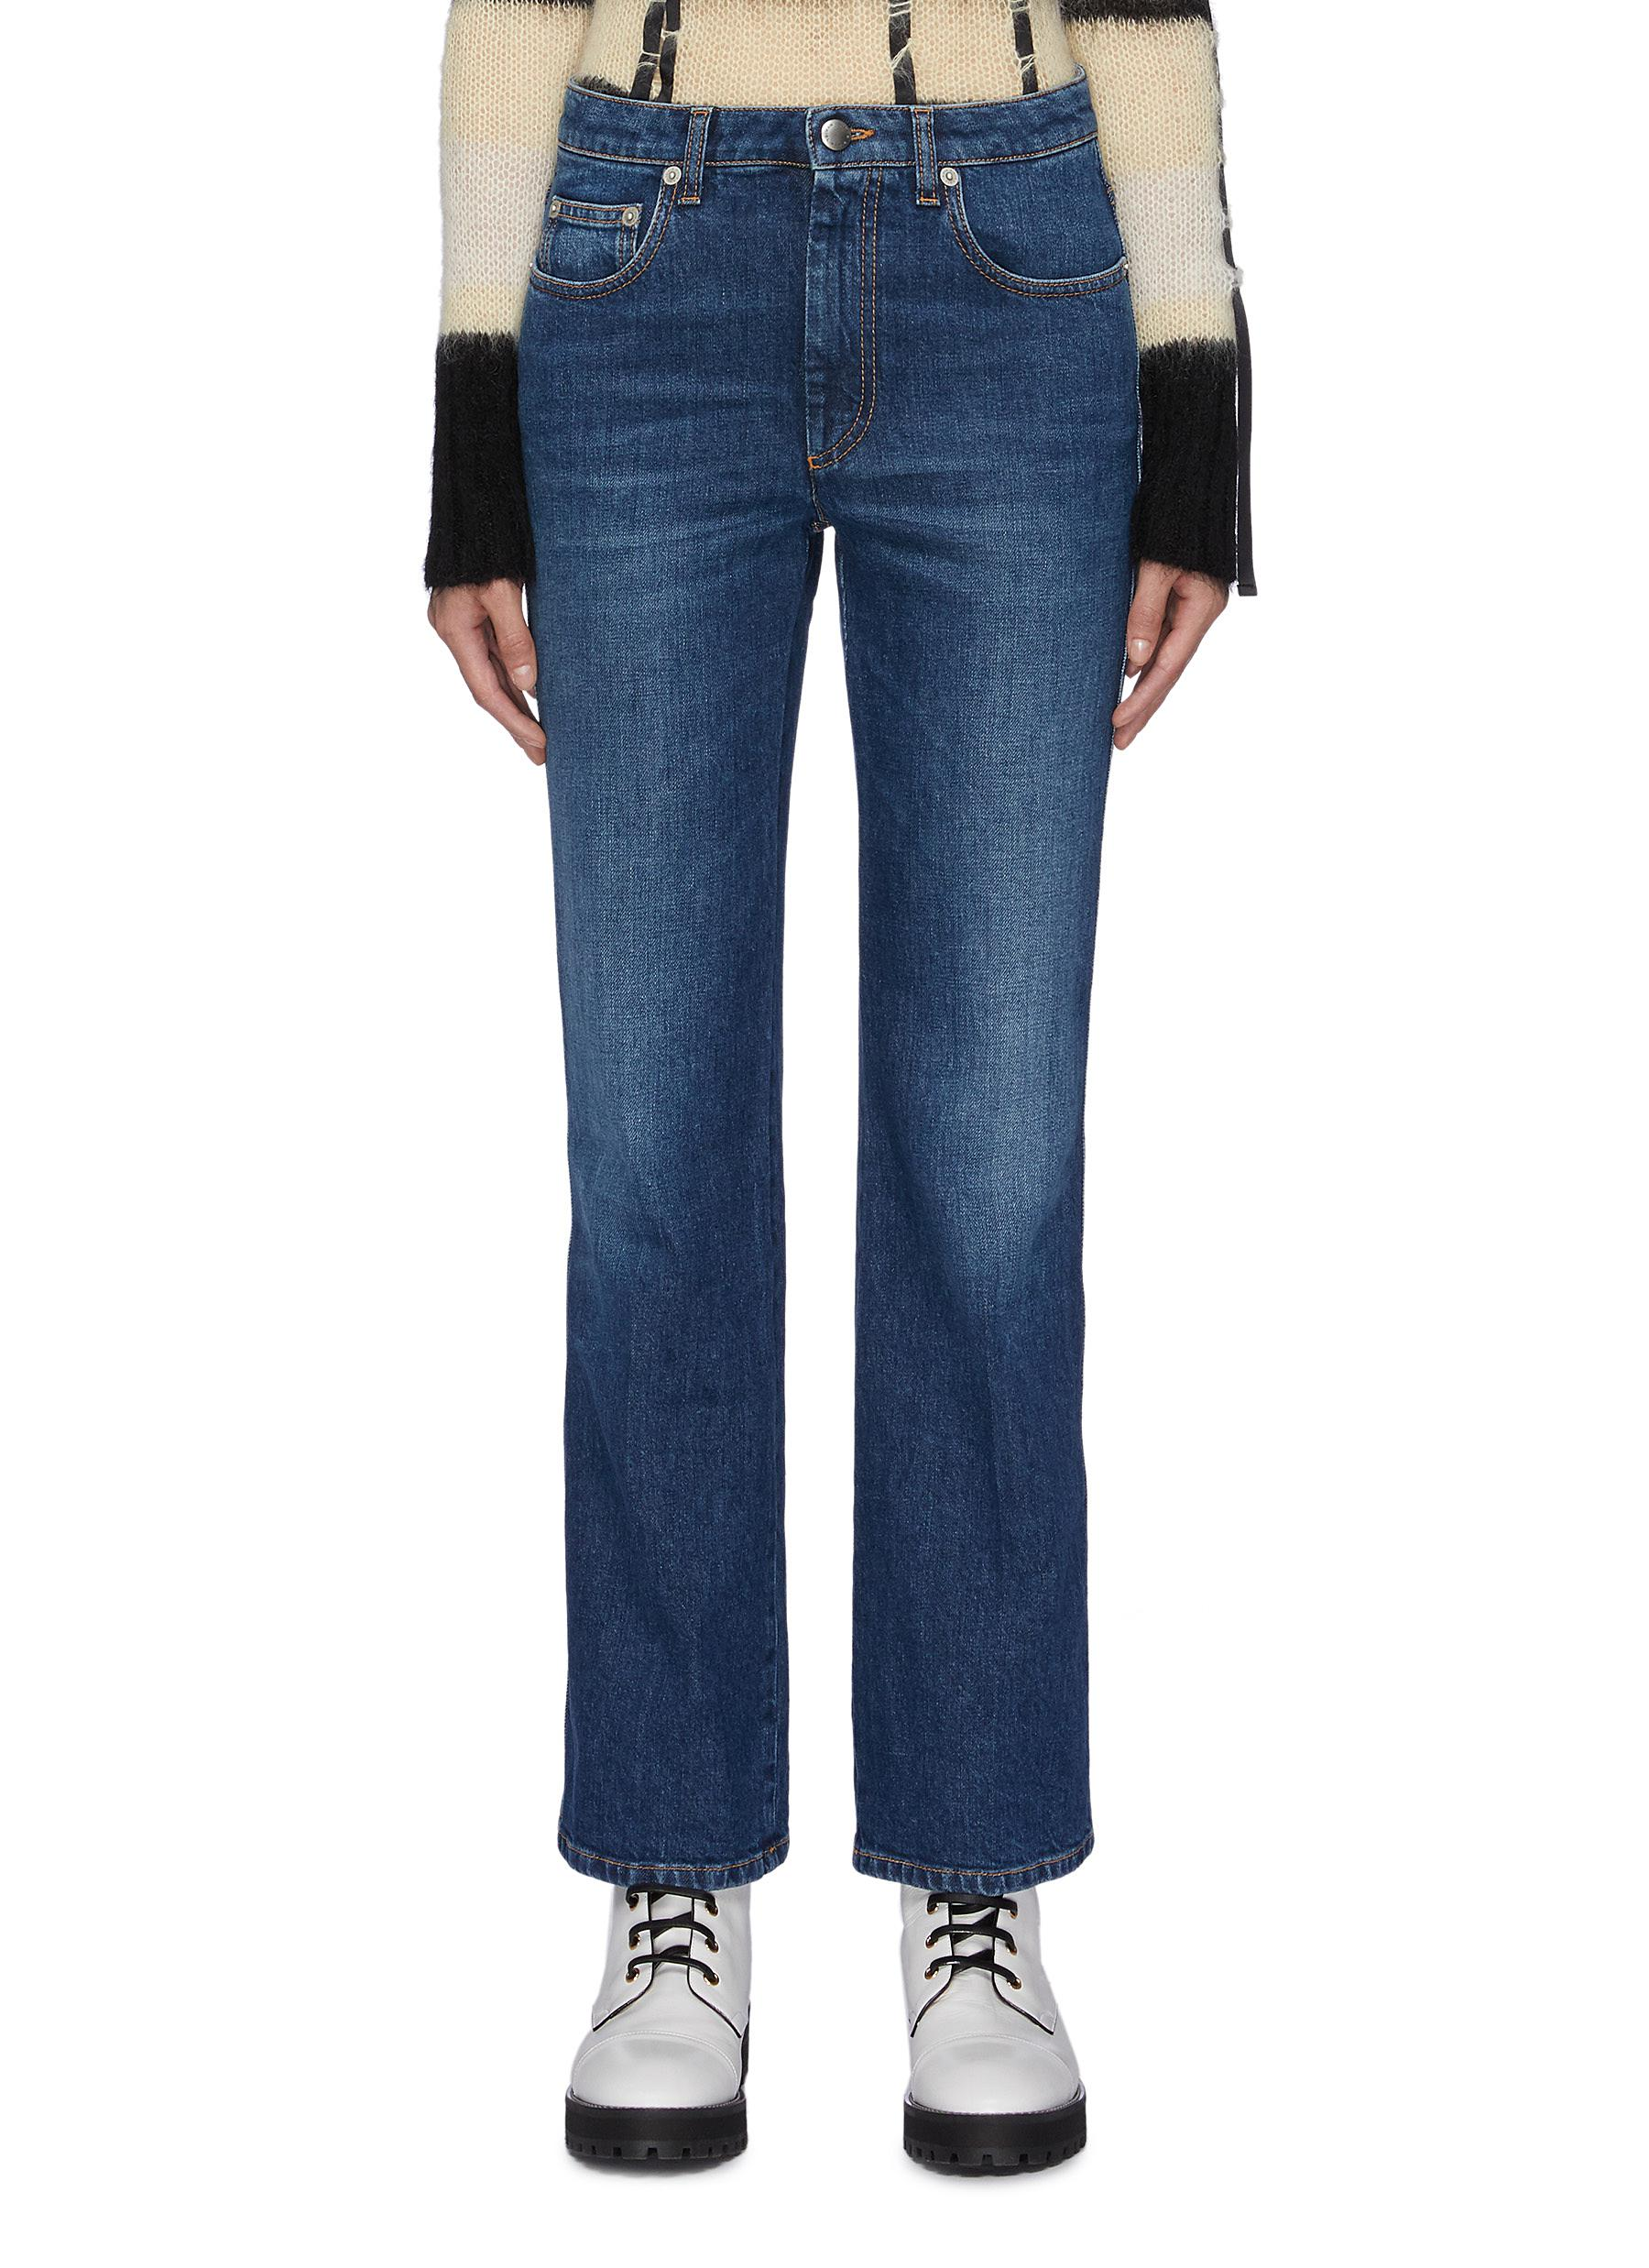 Washed flared jeans by Sonia Rykiel